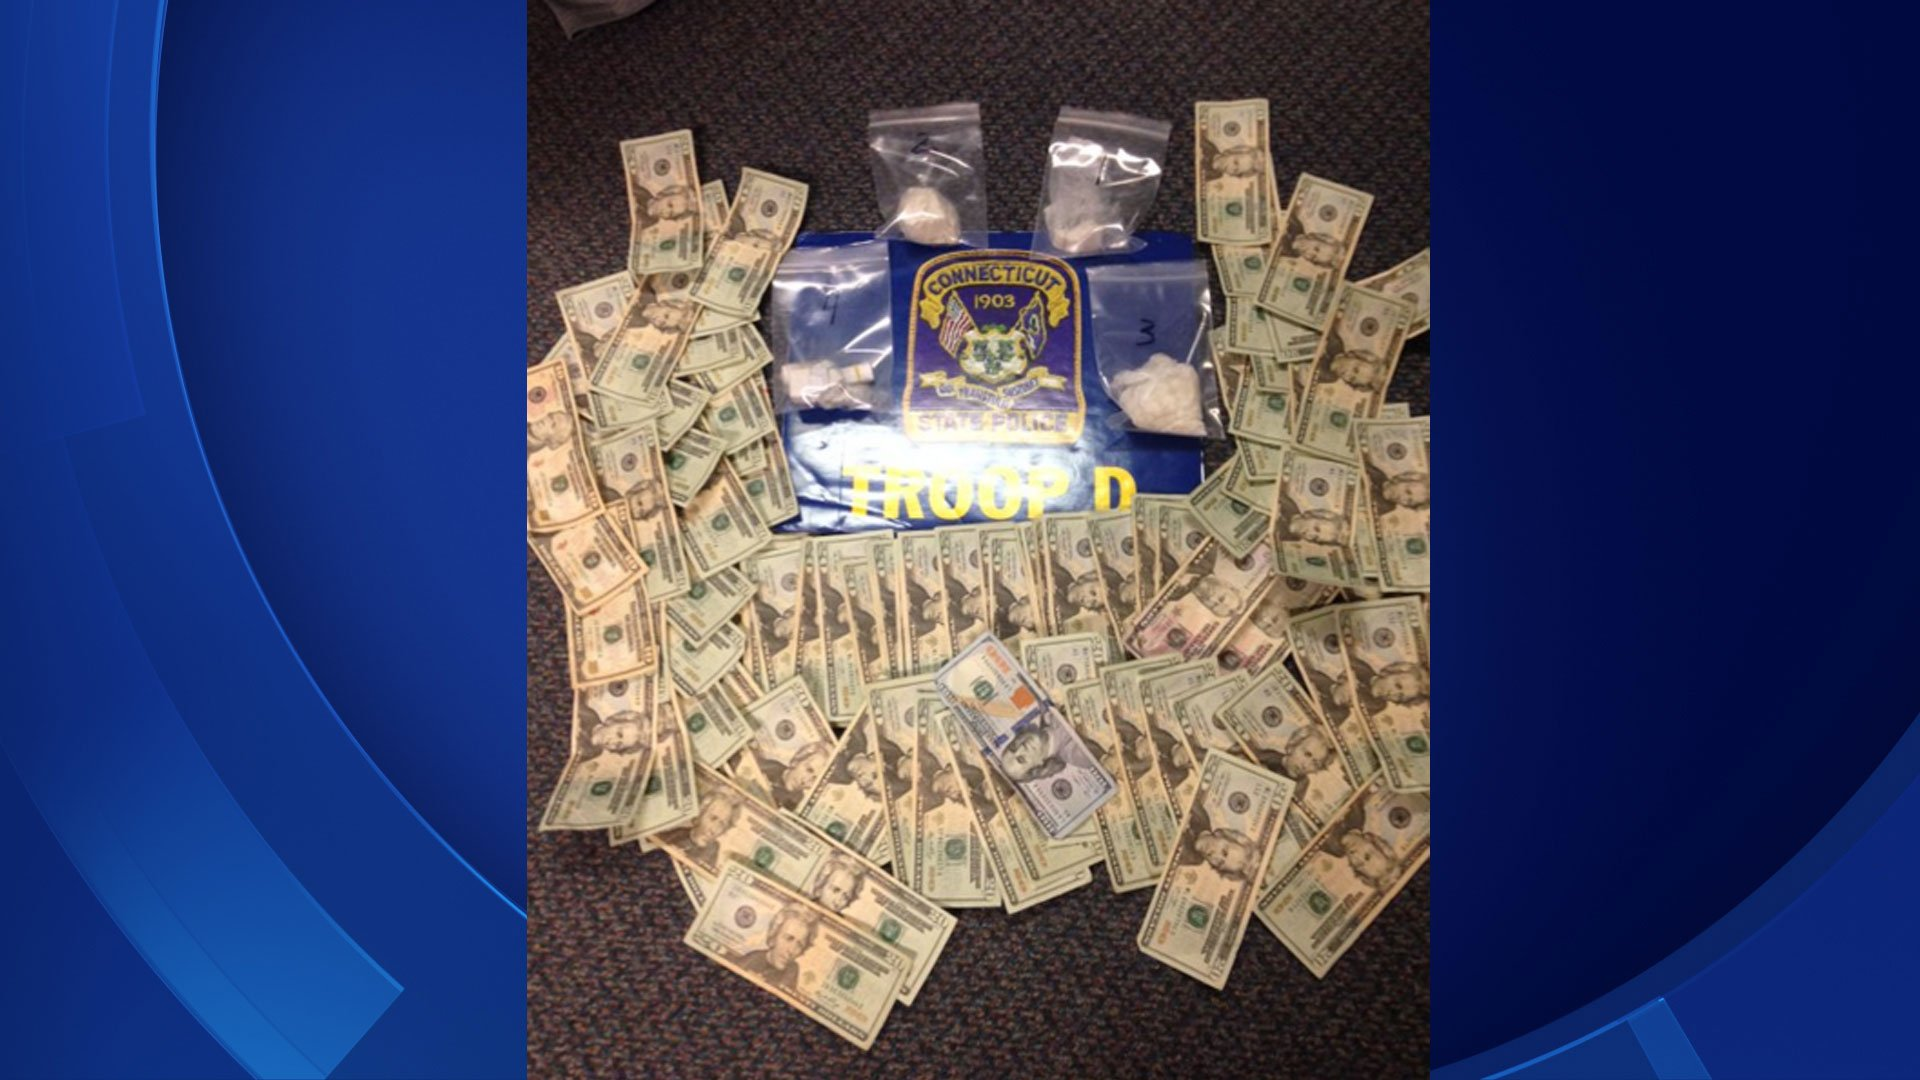 State police released this photo of the items seized during an arrest at a Killingly bar. (CT State Police)